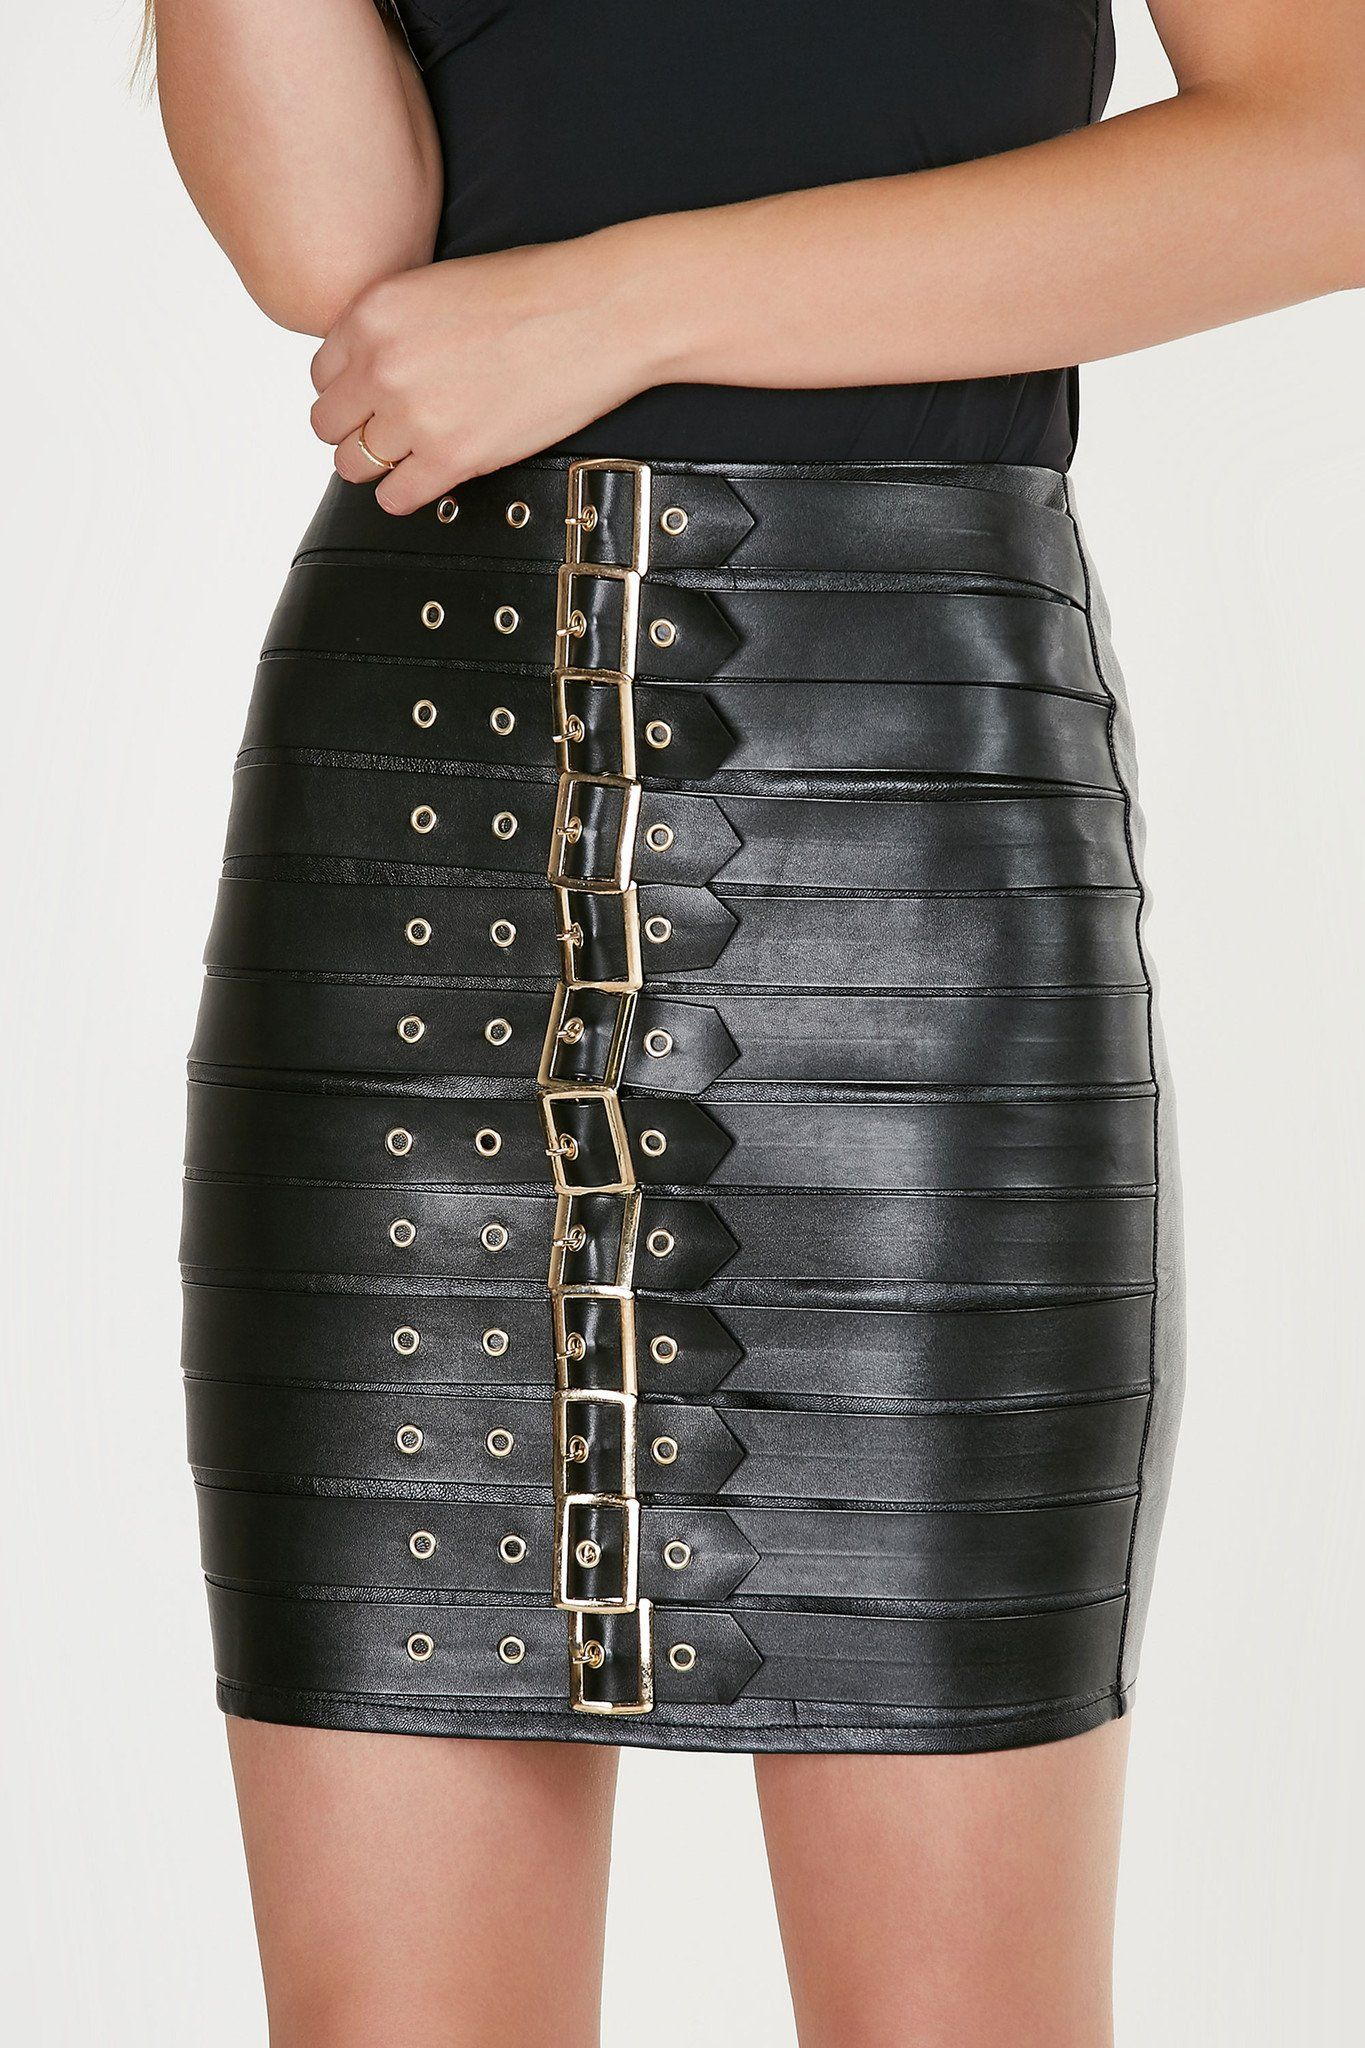 c95ab2b516 Sexy high rise mini skirt with faux leather finish. Bold belted design with  gold hardware finish and back zip closure.